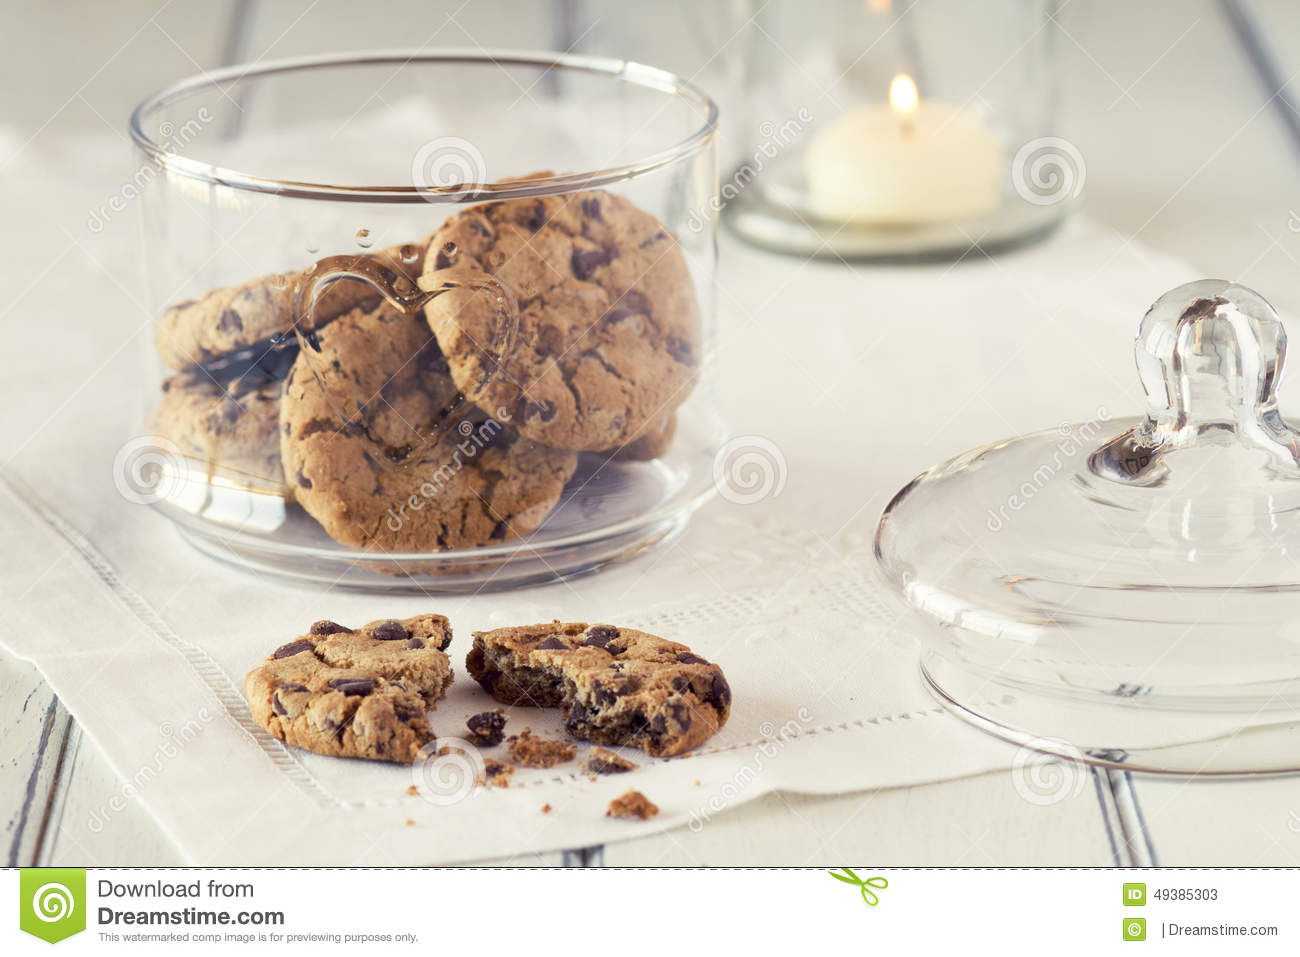 Chocolate Chip Cookies Stock Image Image Of Look Pastry